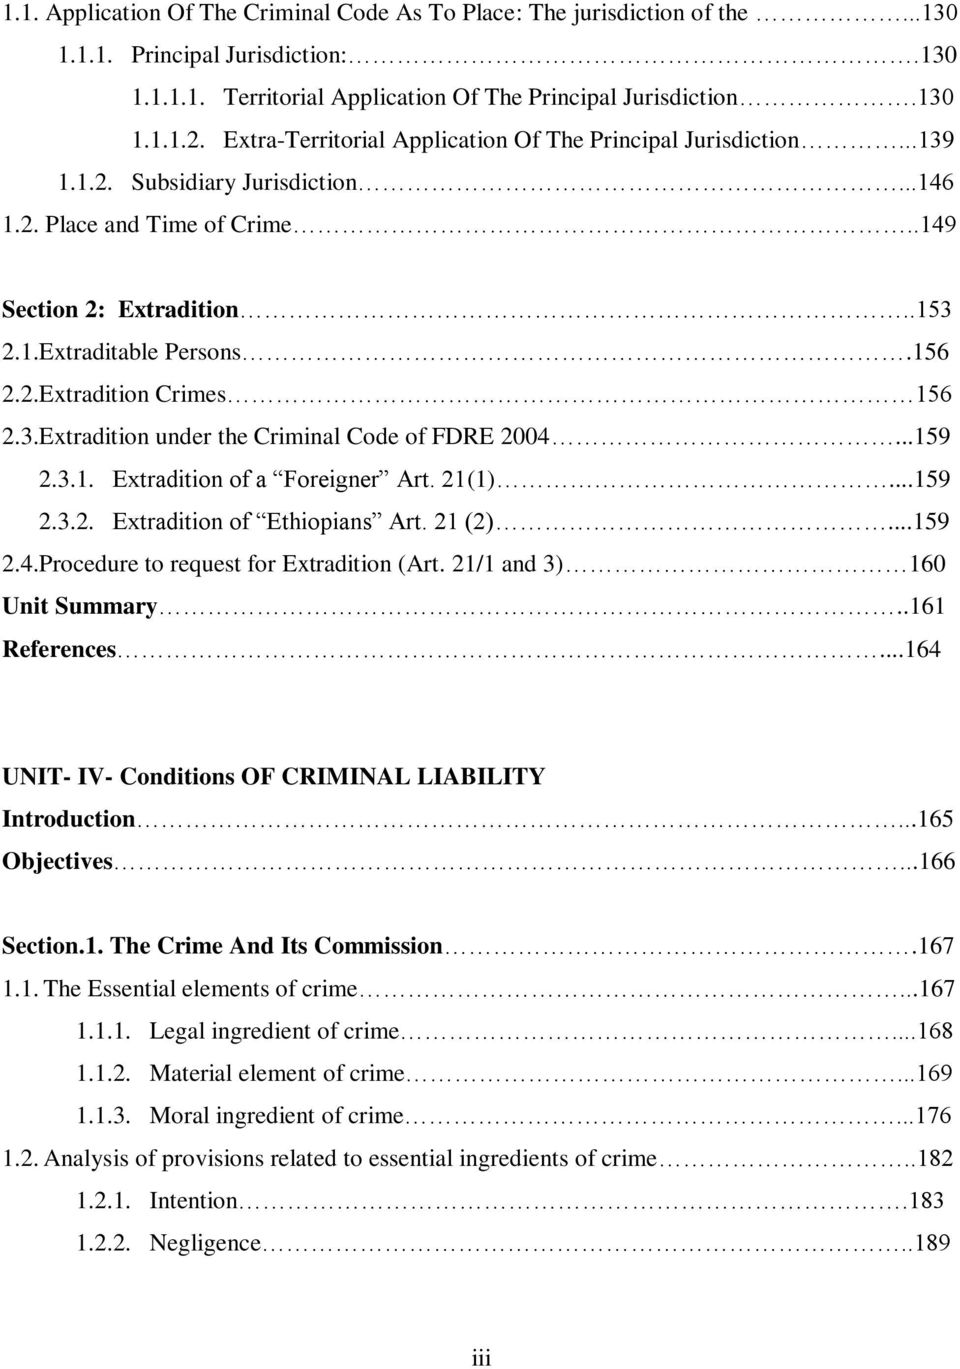 Art. 165 of the Criminal Code with commentary, judicial practice 93